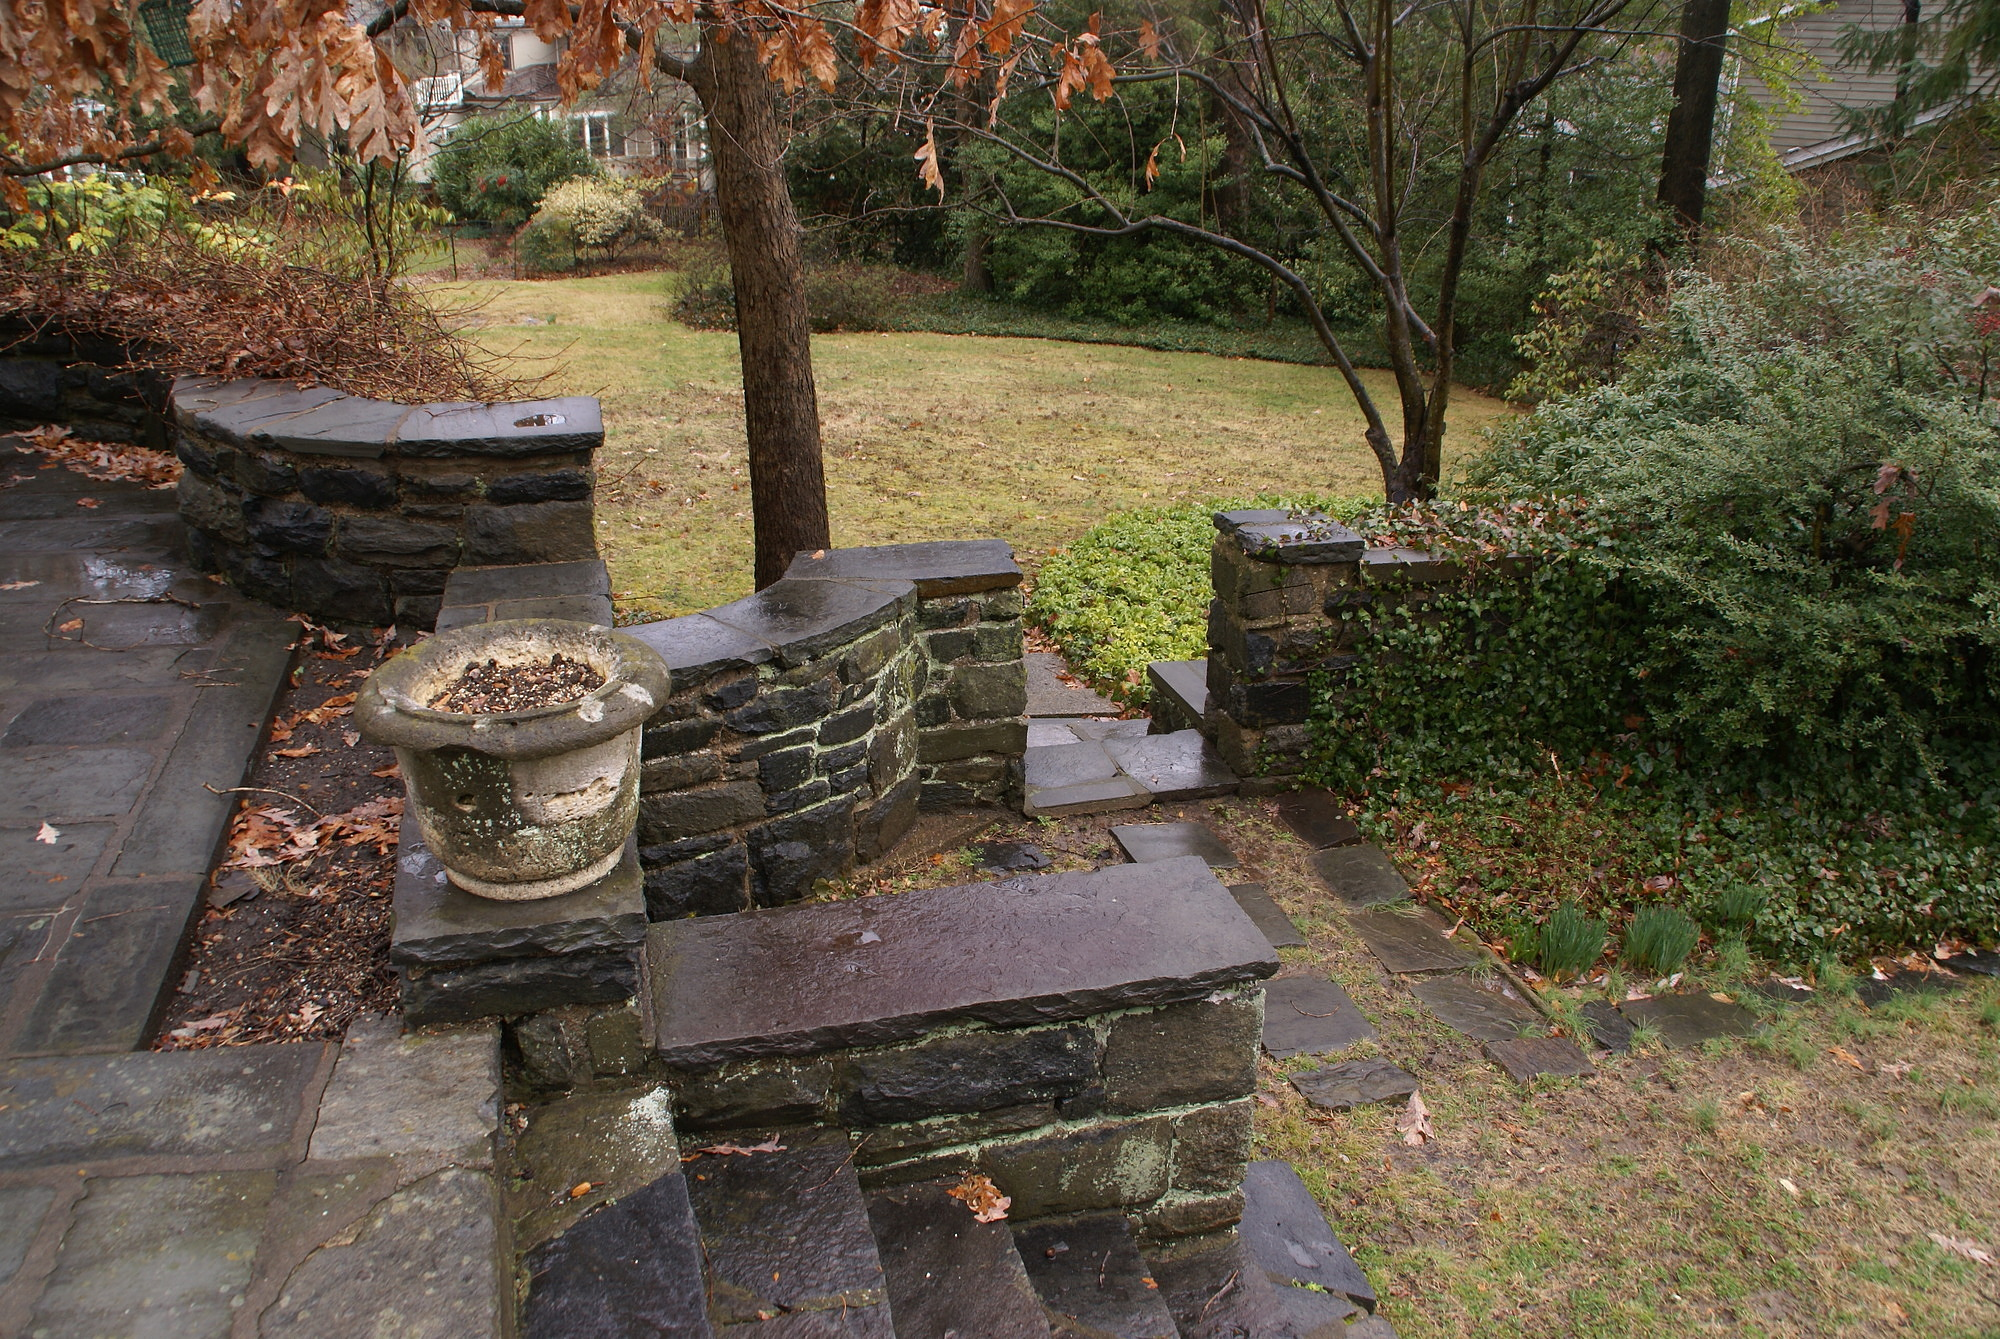 [Marsh Garden]: the hardscape includes steps between the terraces, and a view of lawn that once was a rose garden.